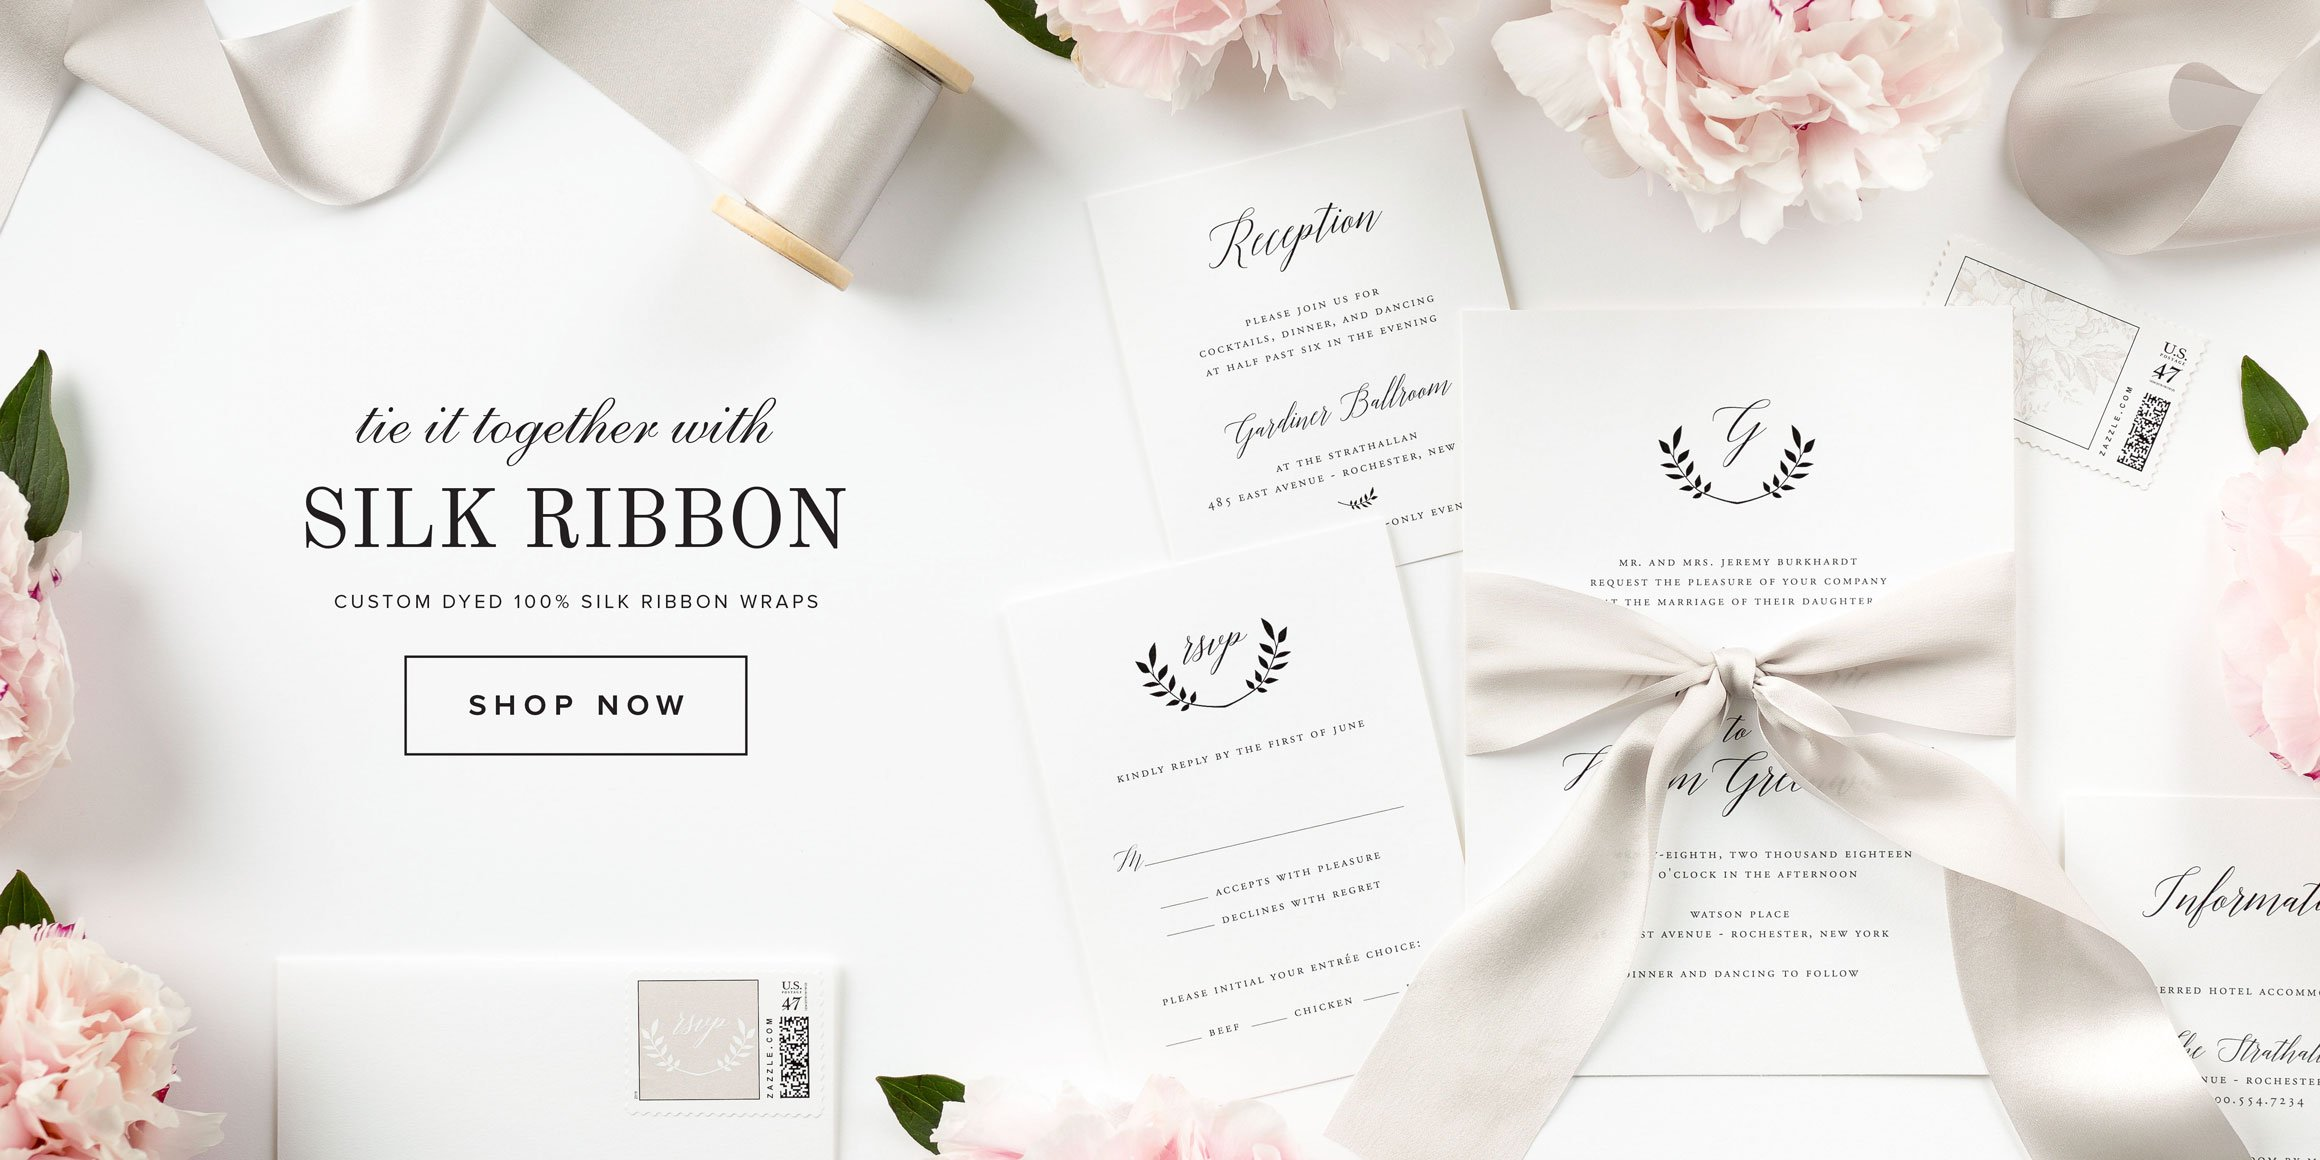 Wedding Invitations Cute is beautiful invitation layout